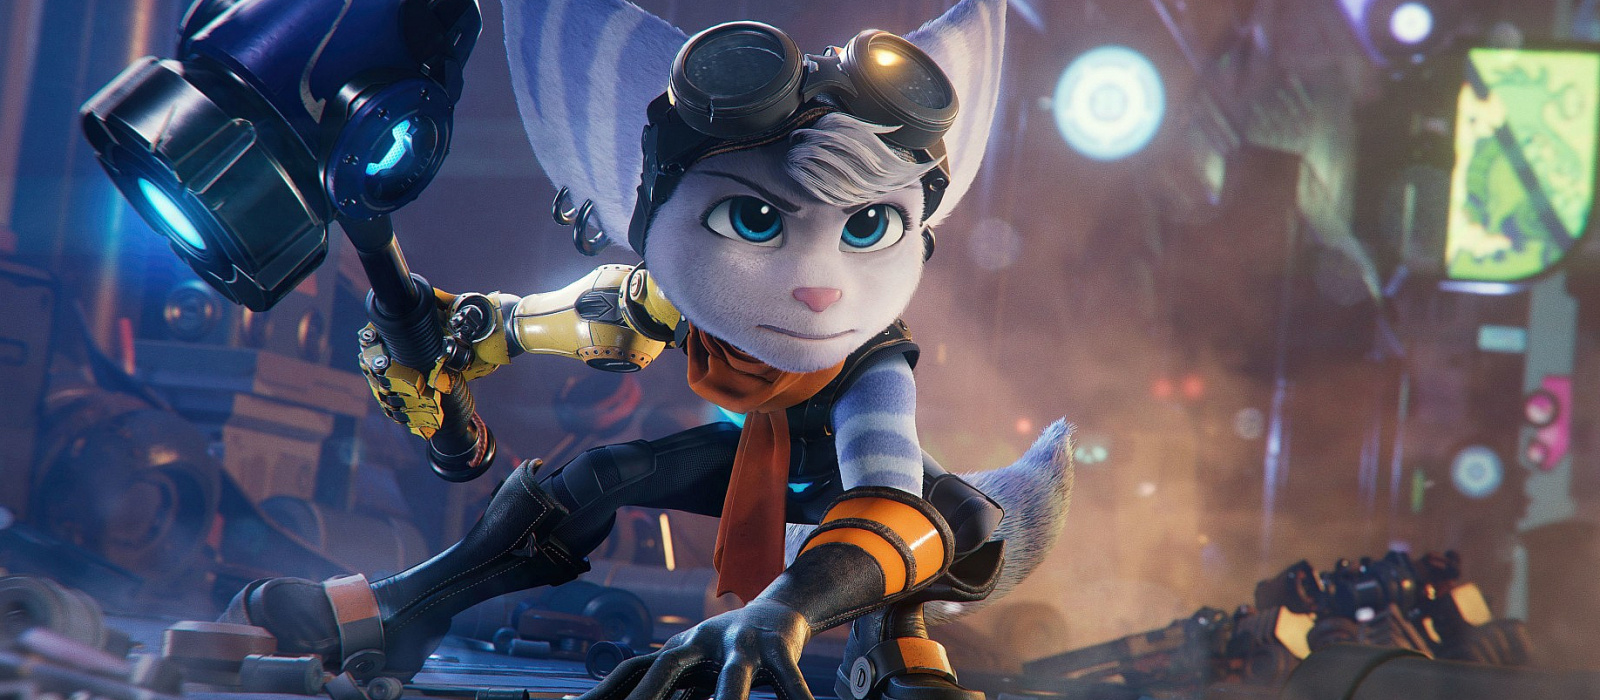 Is Ratchet and Clank: Rift Apart coming to PC, PS4, Xbox One, Xbox Series X and Nintendo Switch?